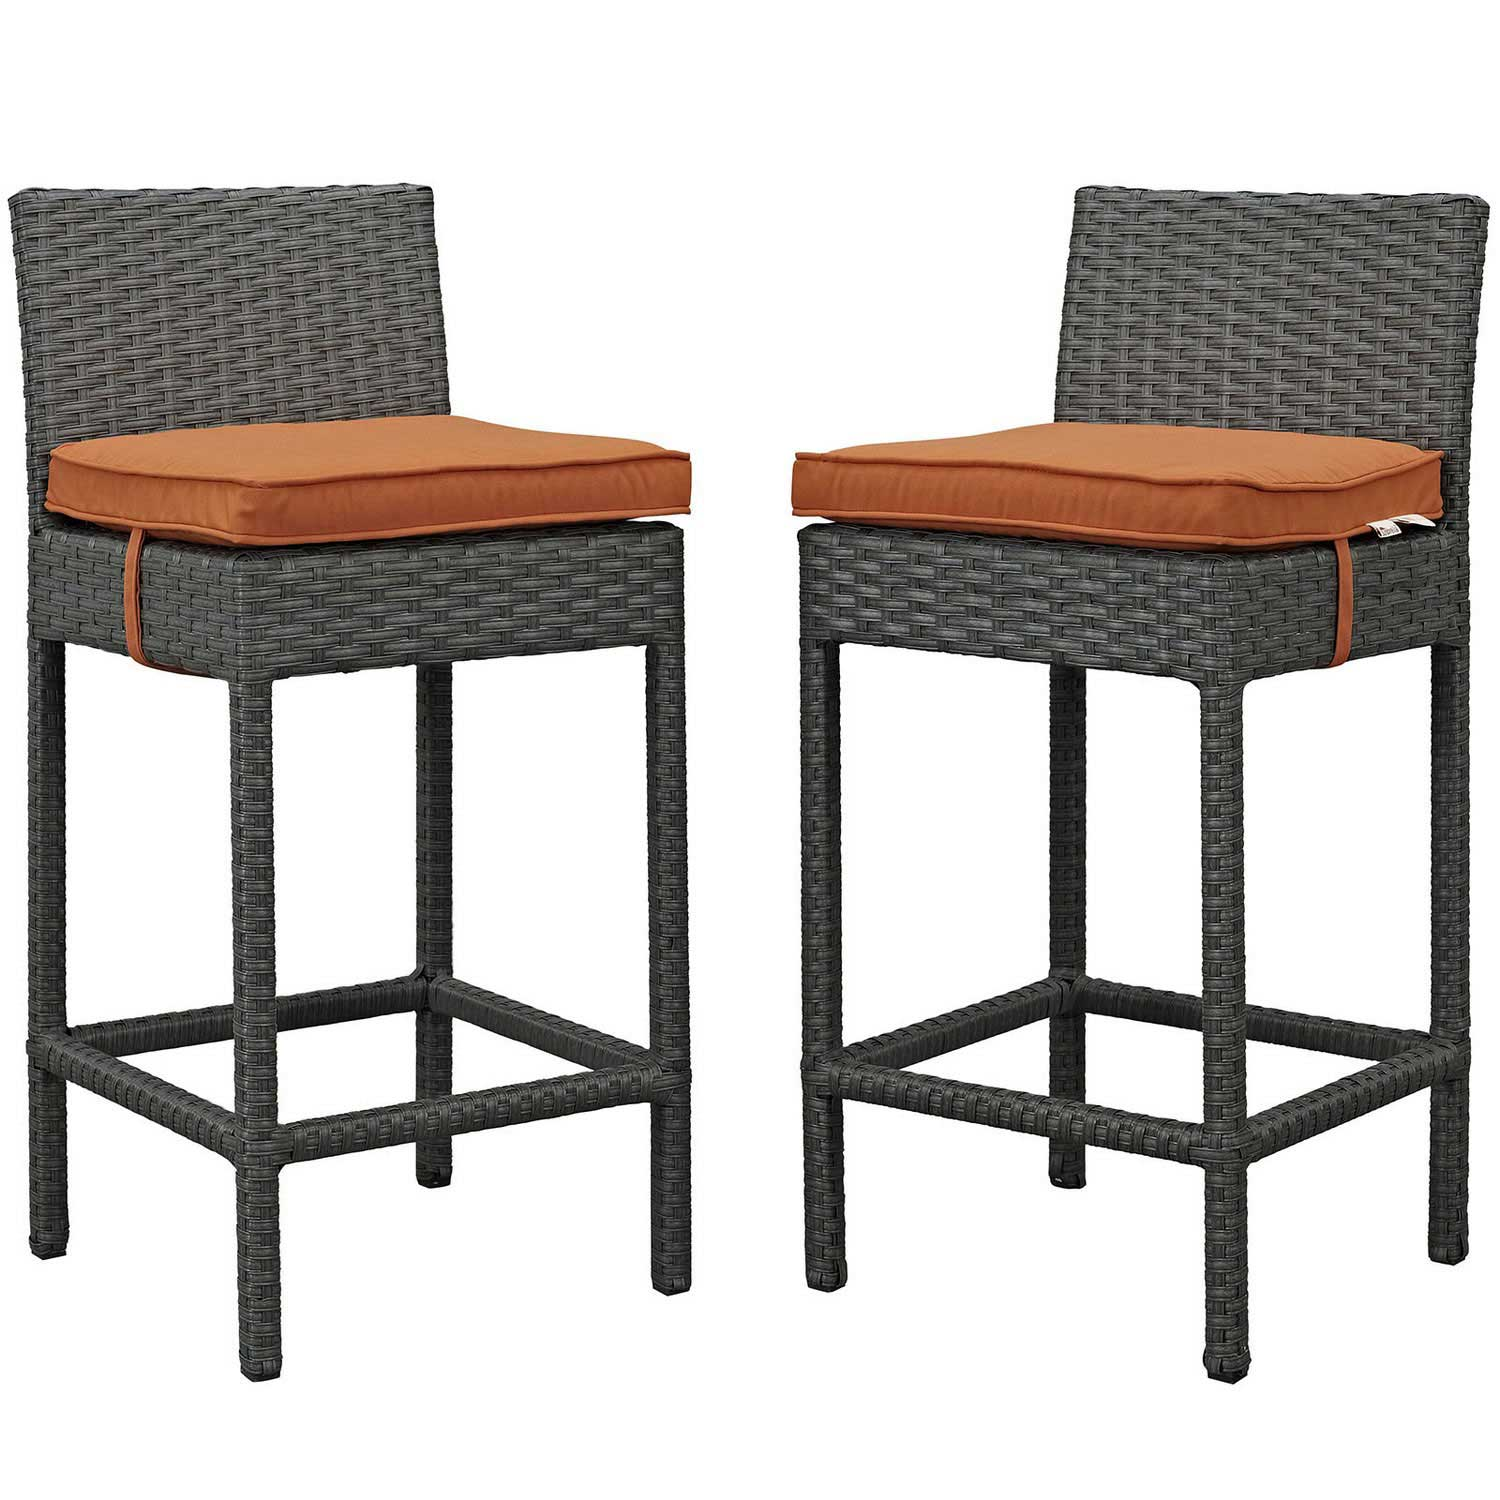 Modway Sojourn 2 Piece Outdoor Patio Sunbrella Pub Set - Canvas Tuscan